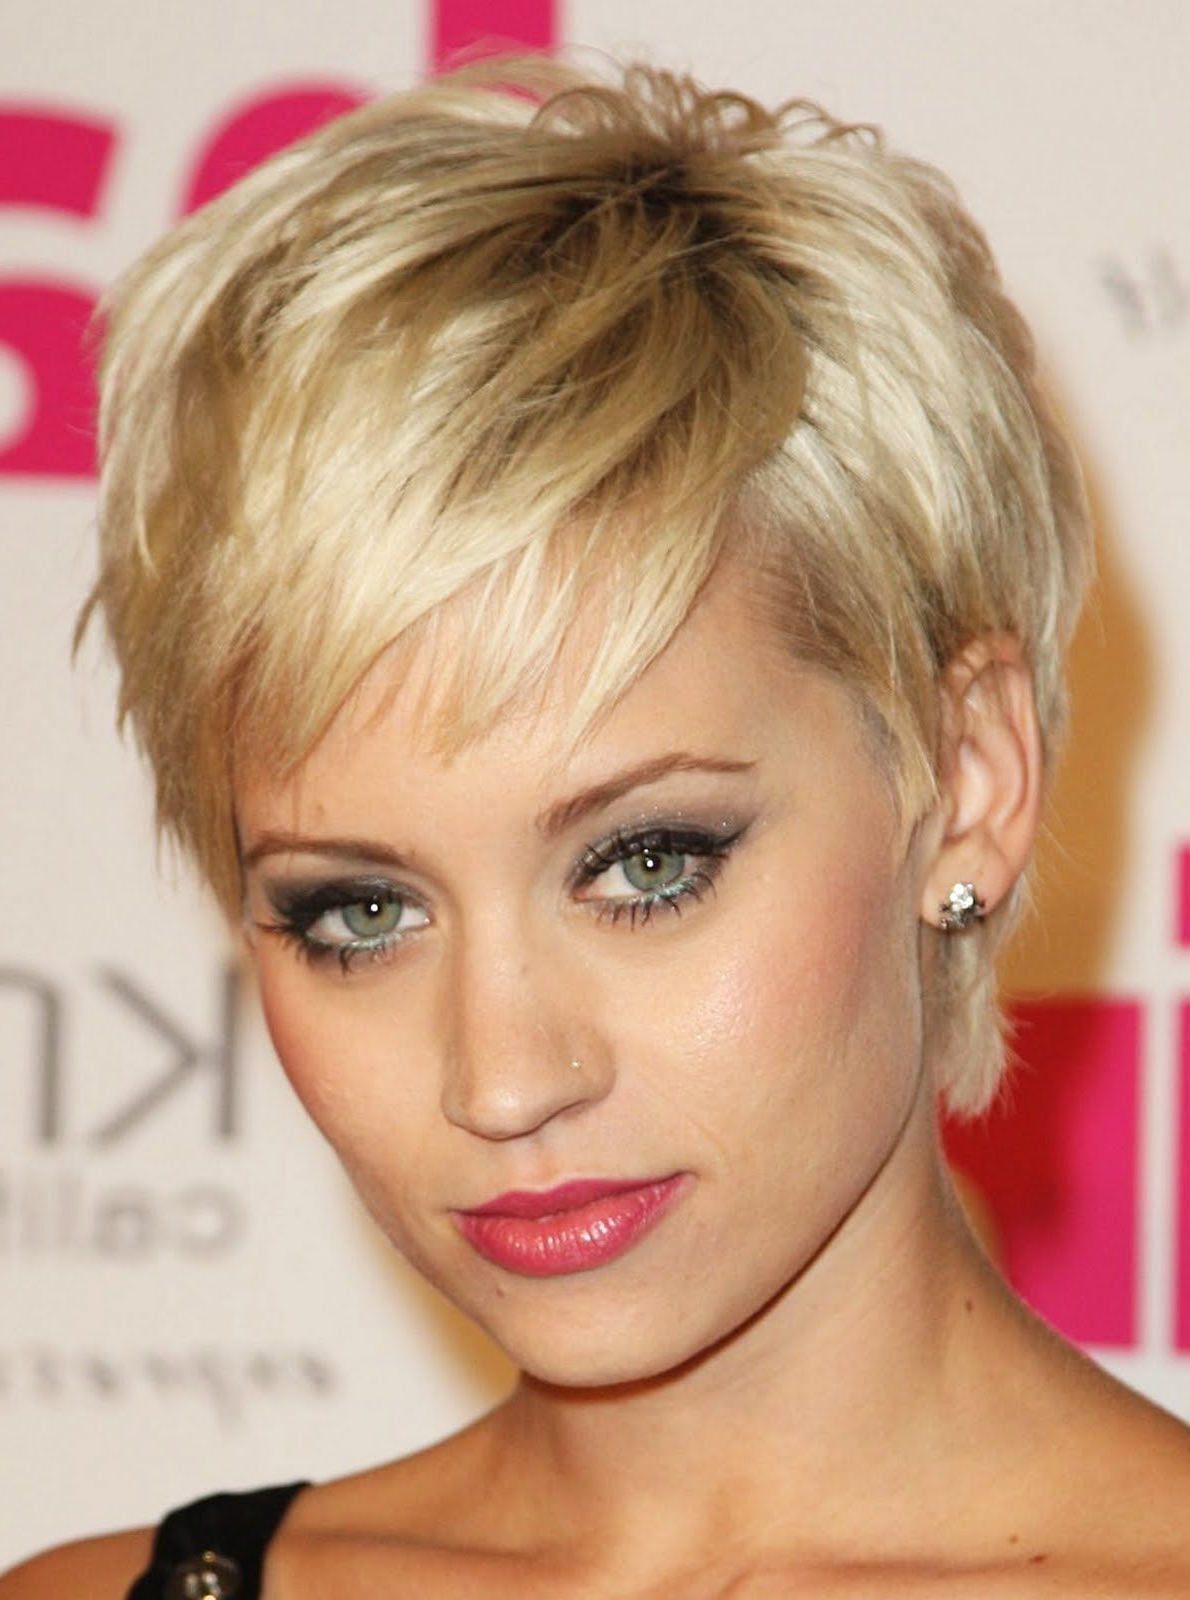 Short Hairstyles For Oval Faces | Hair Cut | Pinterest | Short Hair With Regard To Short Haircuts For Fat Oval Faces (View 2 of 25)